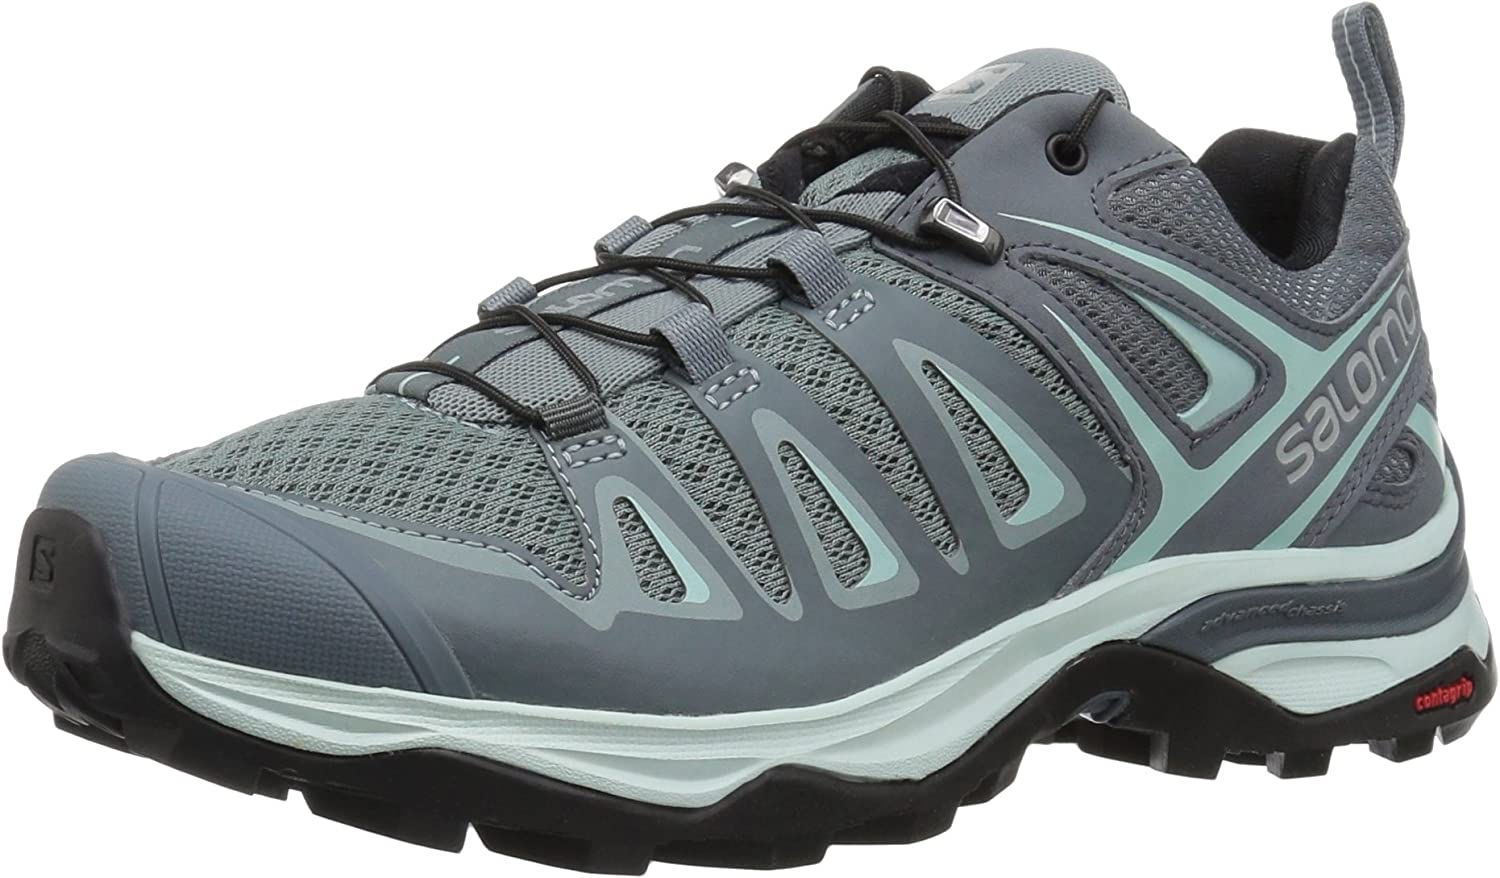 Salomon X Ultra 3 Women's Hiking Shoe